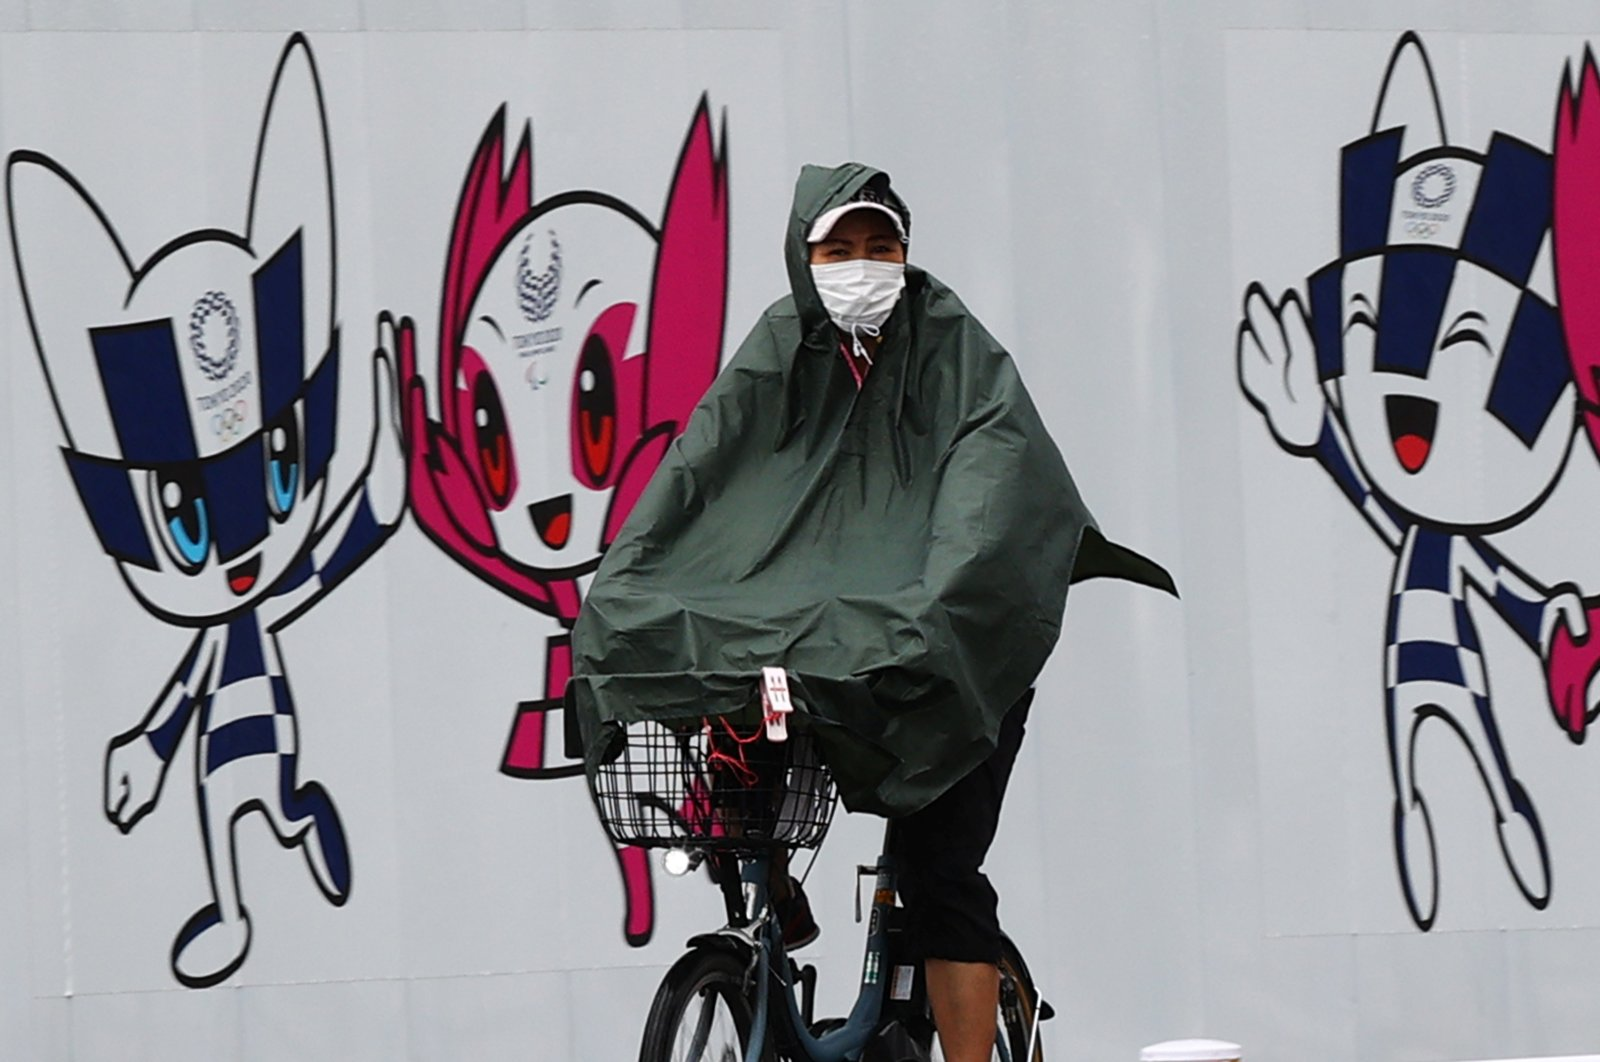 A person wearing a rain coat rides a bicycle in front of a wall decoration featuring Tokyo 2020 Olympic Games mascot Miraitowa and Paralympics mascot Someity, Tokyo, Japan, July 27, 2021. (Reuters Photo)